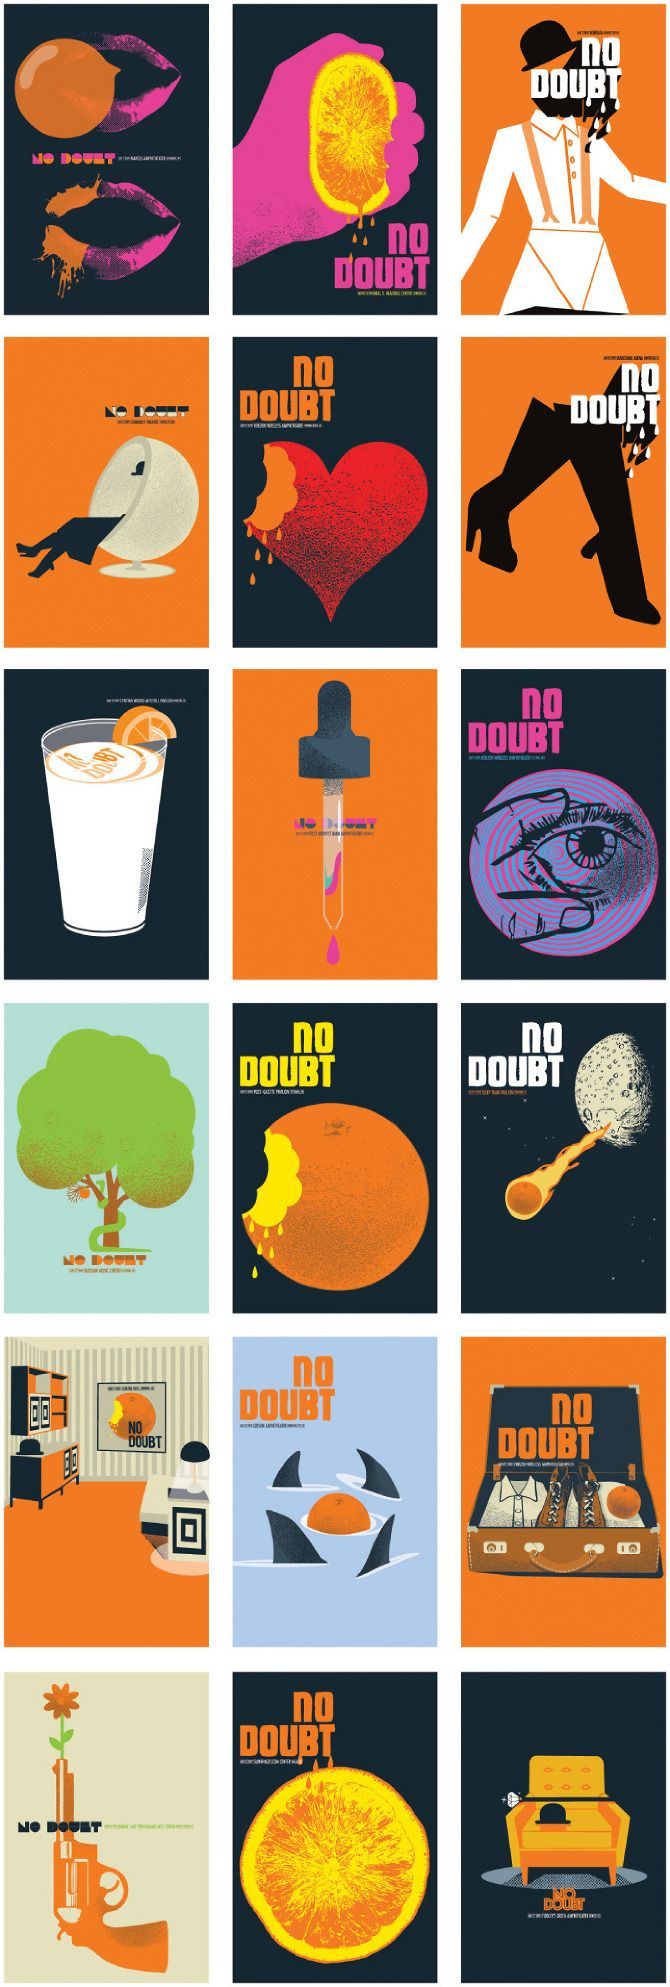 Posters for No Doubt's reunion tour in 2009